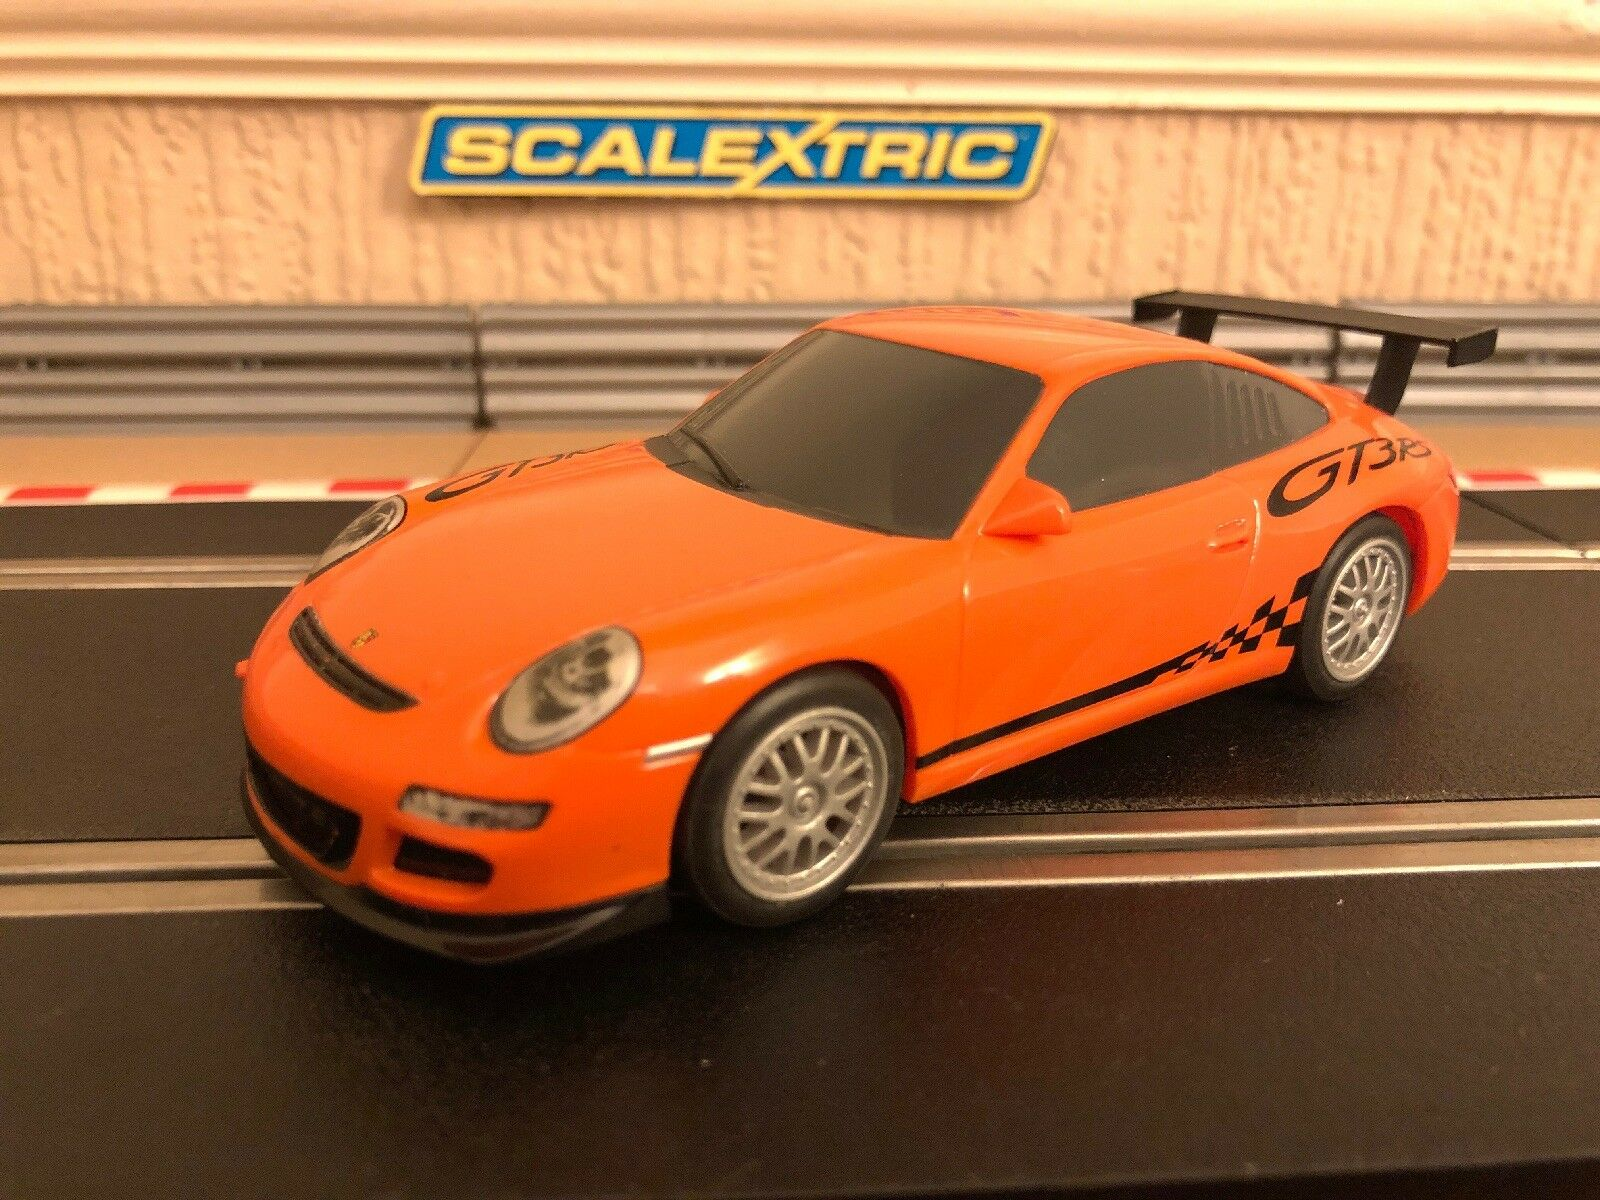 Scalextric Porsche 997 GT3RS Extremely Rare Livery Mint Condition